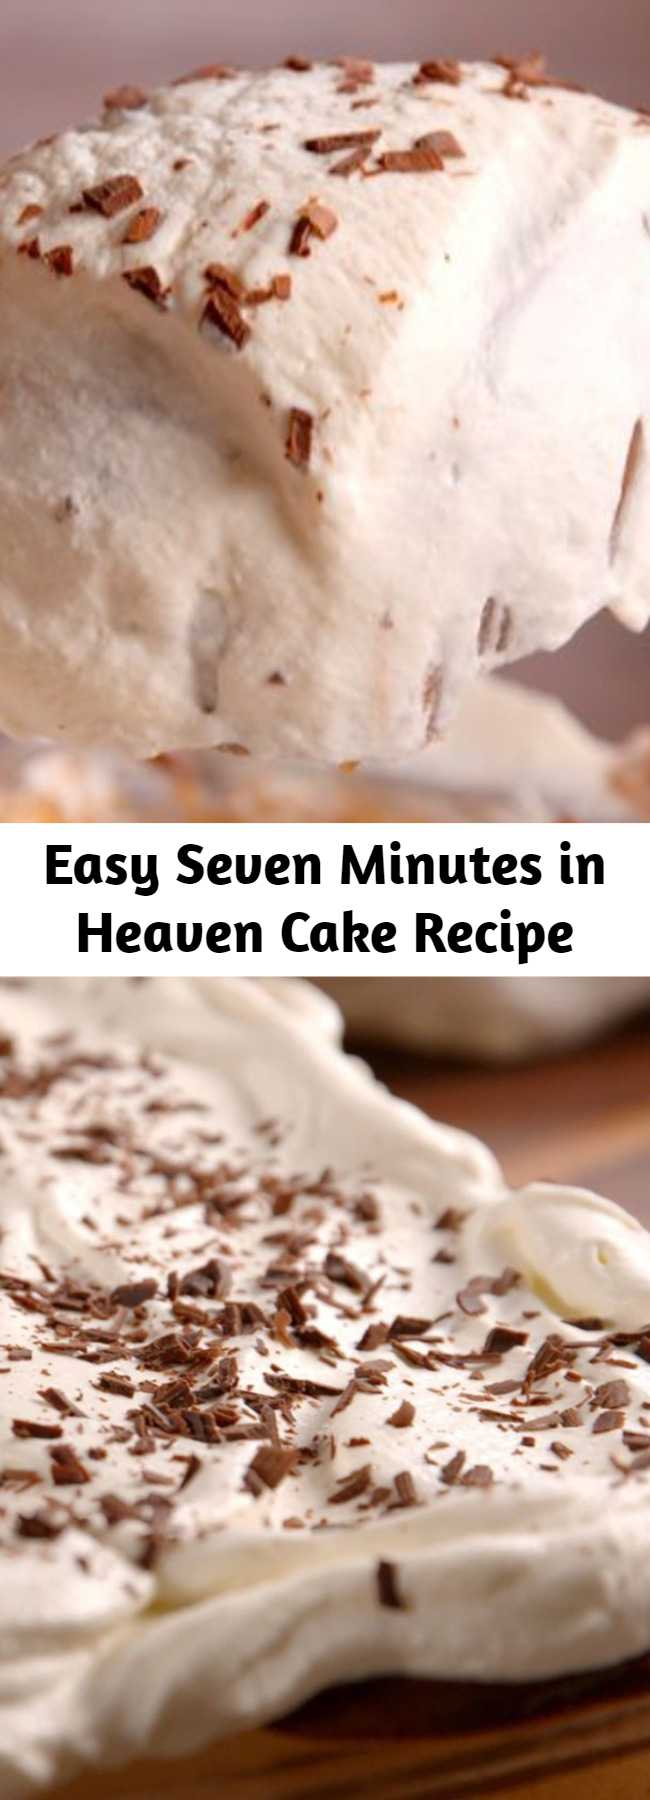 Easy Seven Minutes in Heaven Cake Recipe - Check out this seriously decadent recipe for seven minutes in heaven angel food cake.